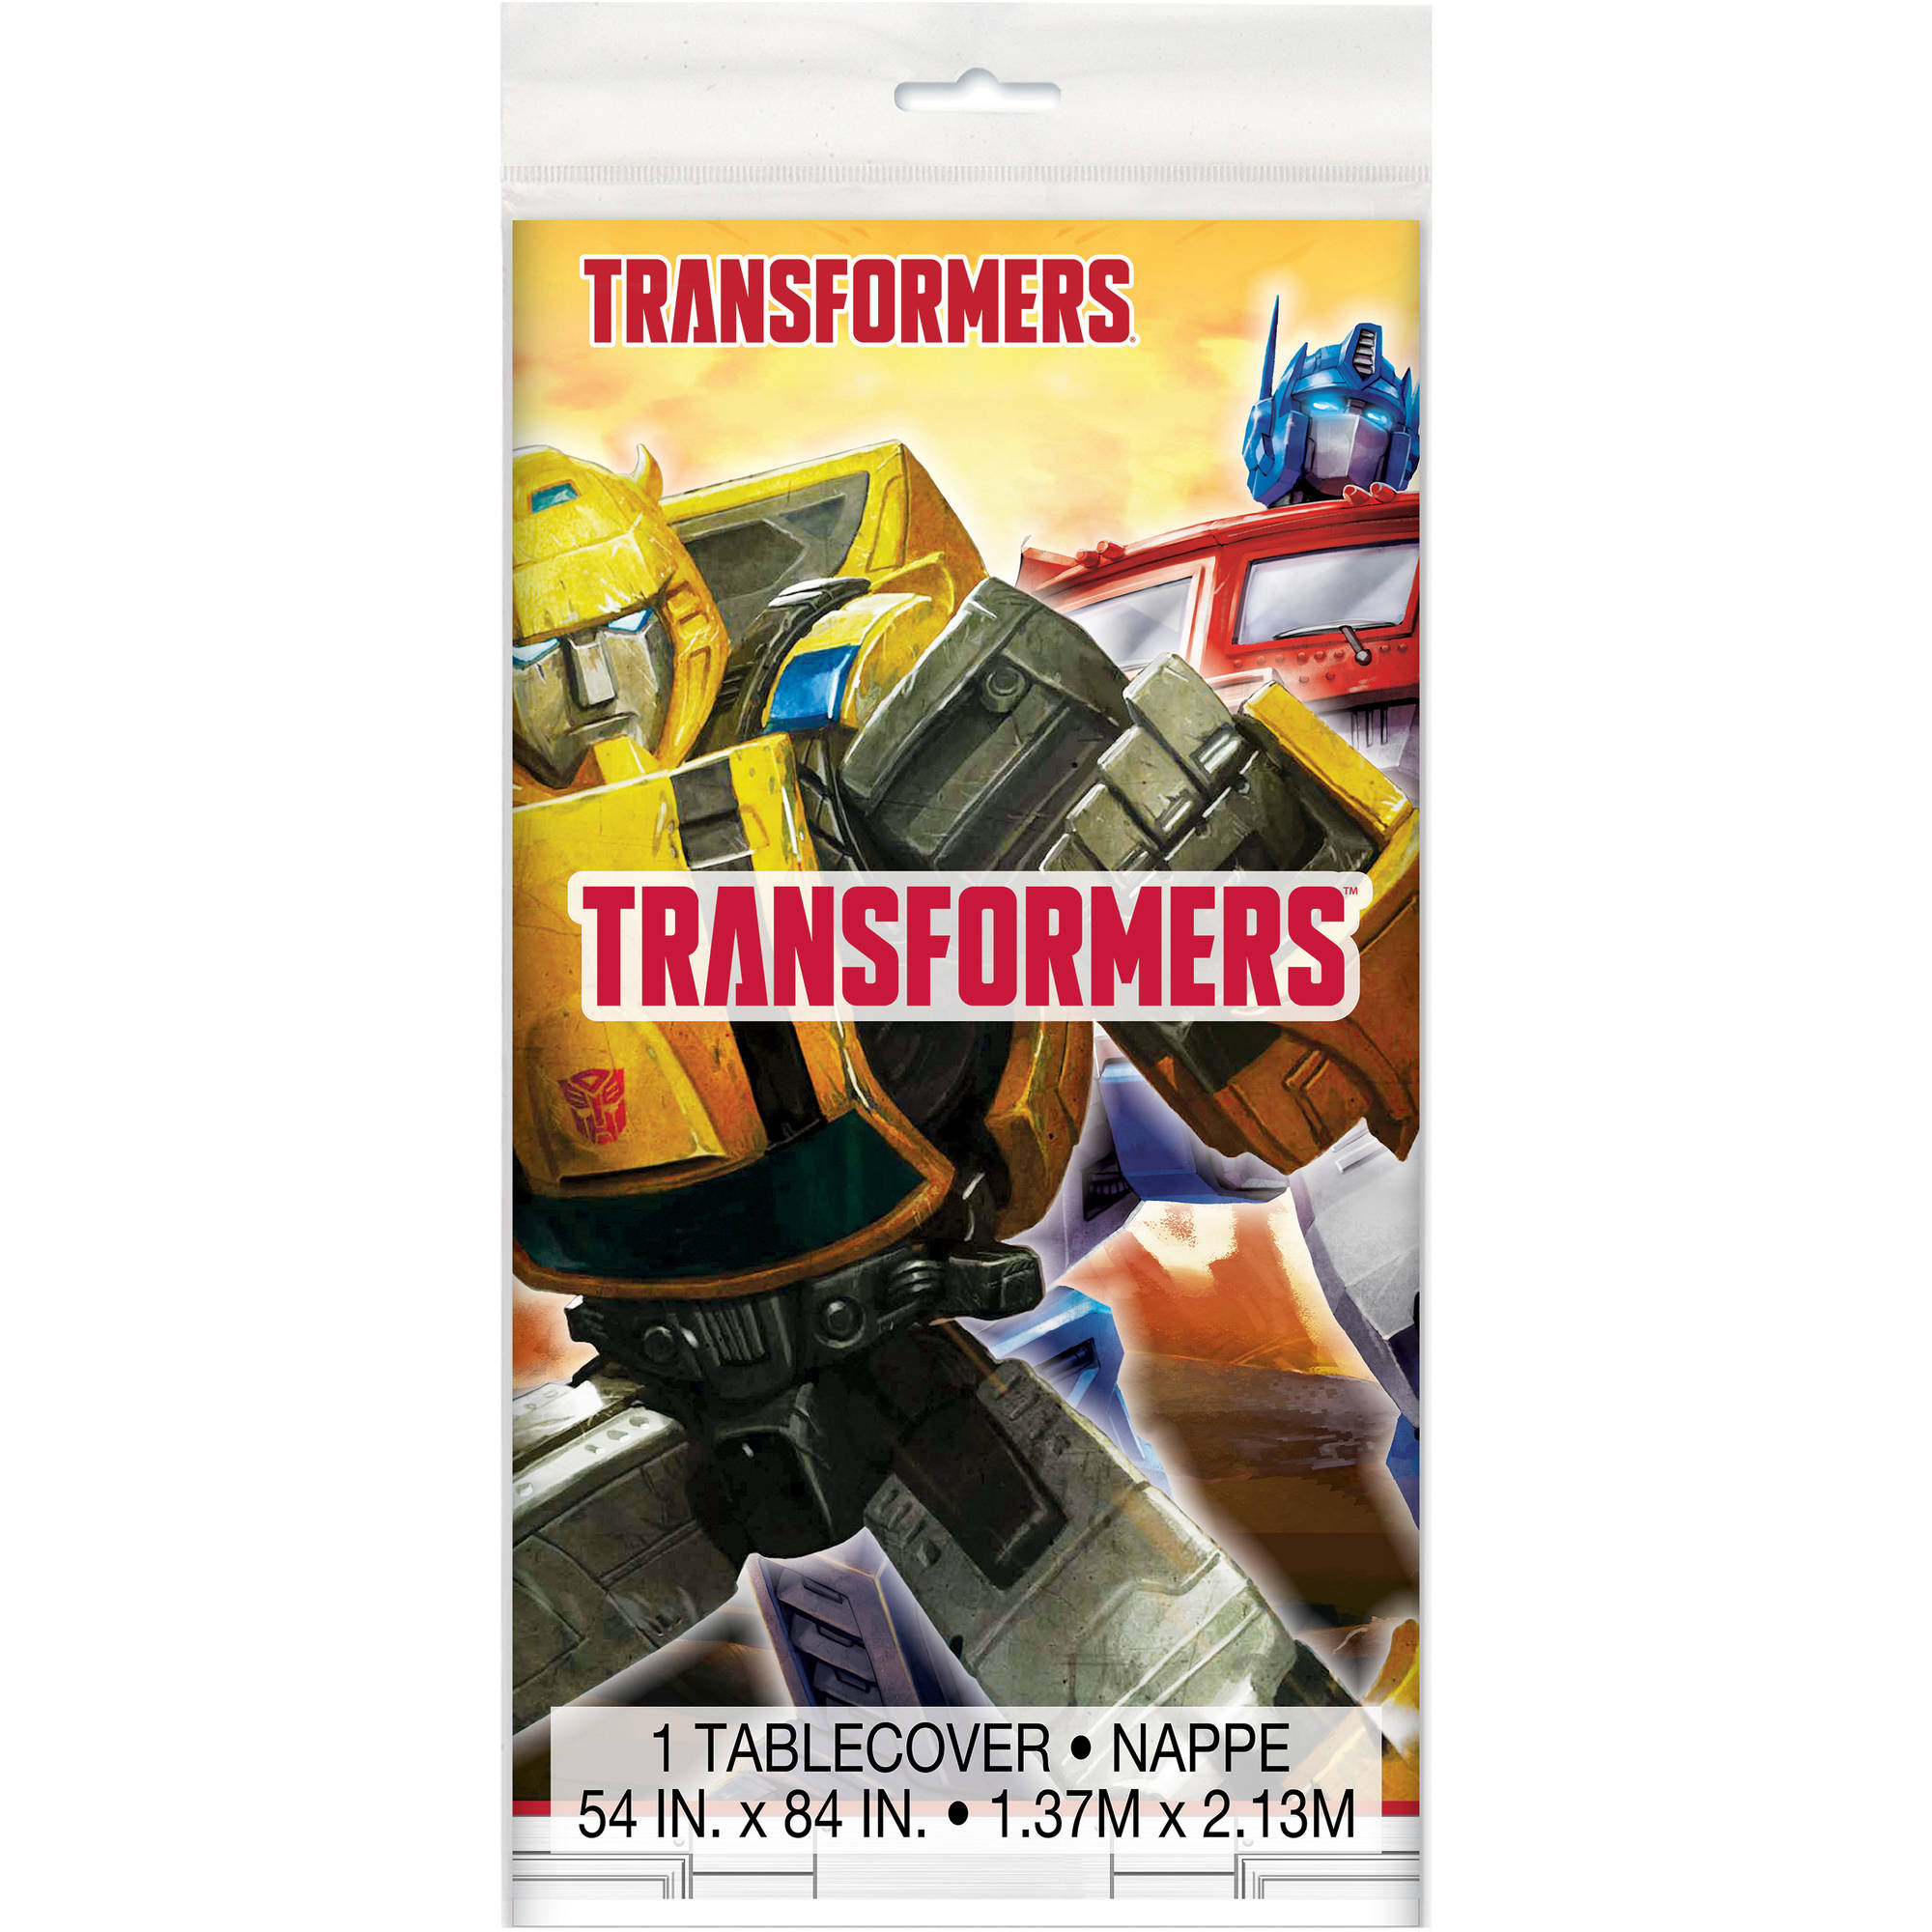 Transformers Plastic Tablecloth, 84 x 54 in, 1ct